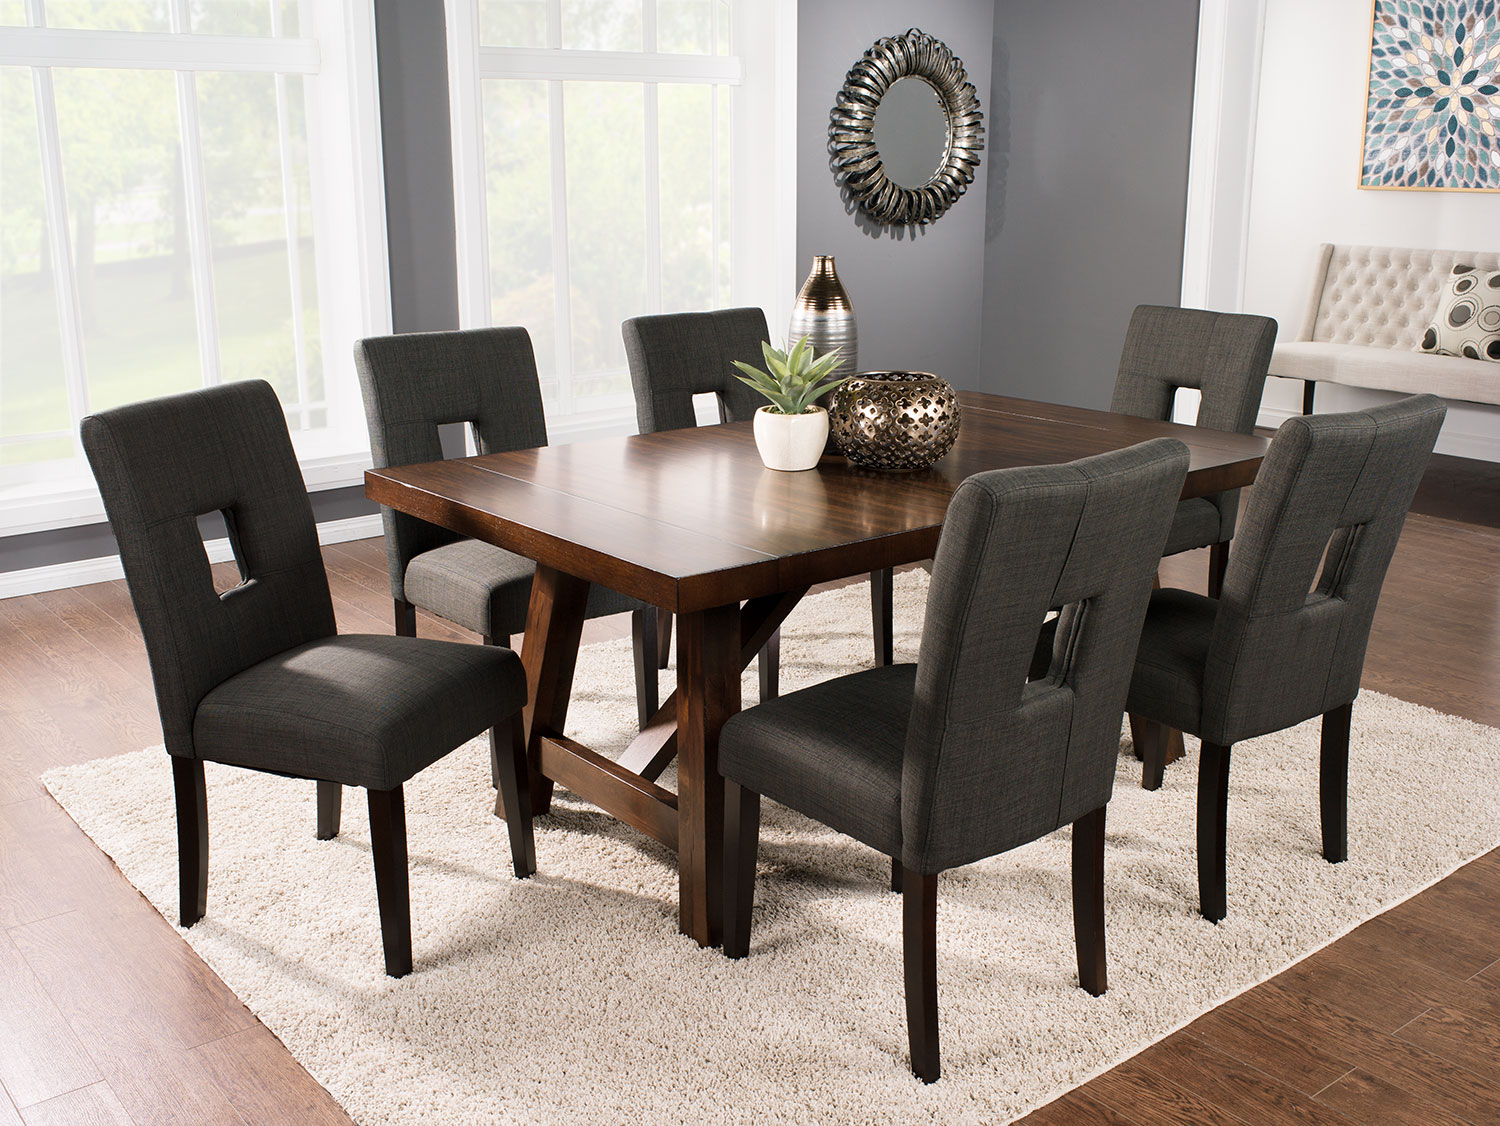 Dining Room Furniture - Adara 7-Piece Dining Package with McKena Chairs